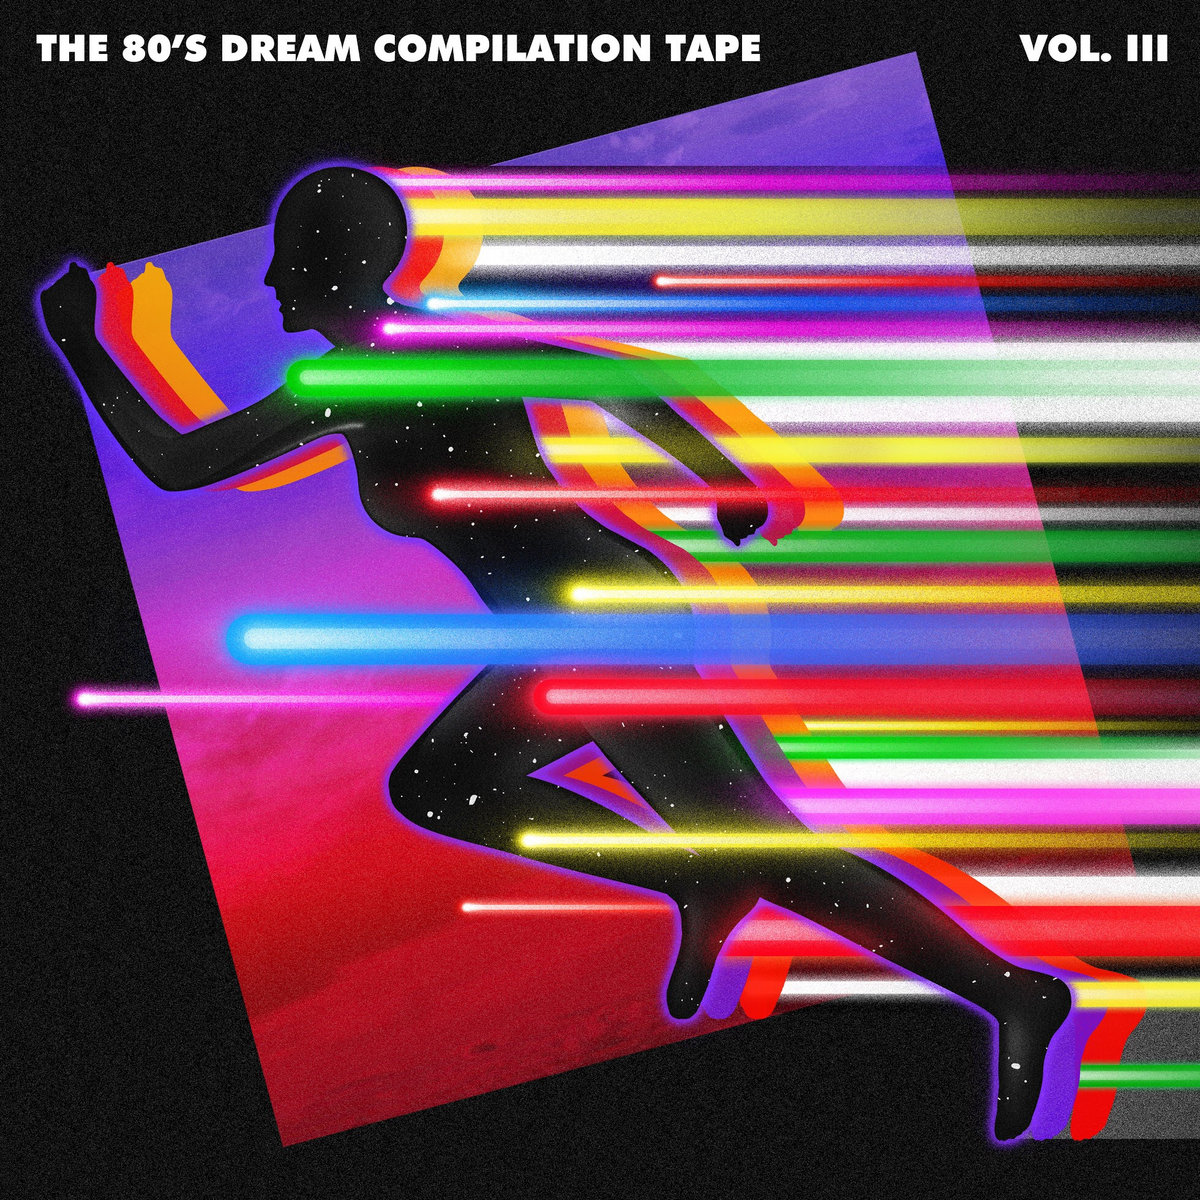 The 80s Dream Compilation Tape